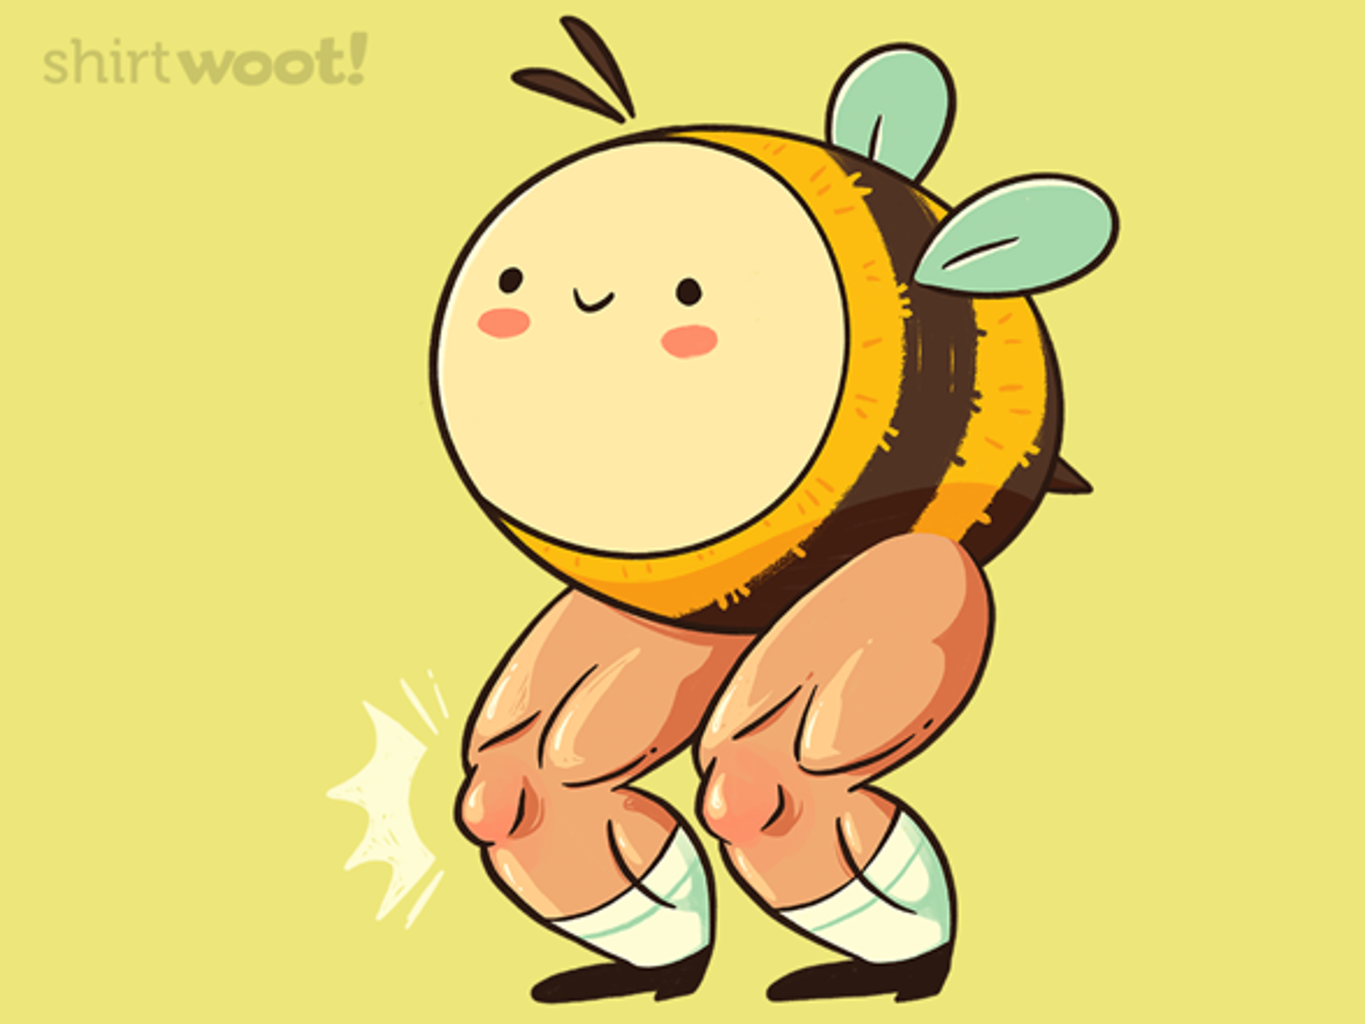 Woot!: The Bee's Knees - $15.00 + Free shipping